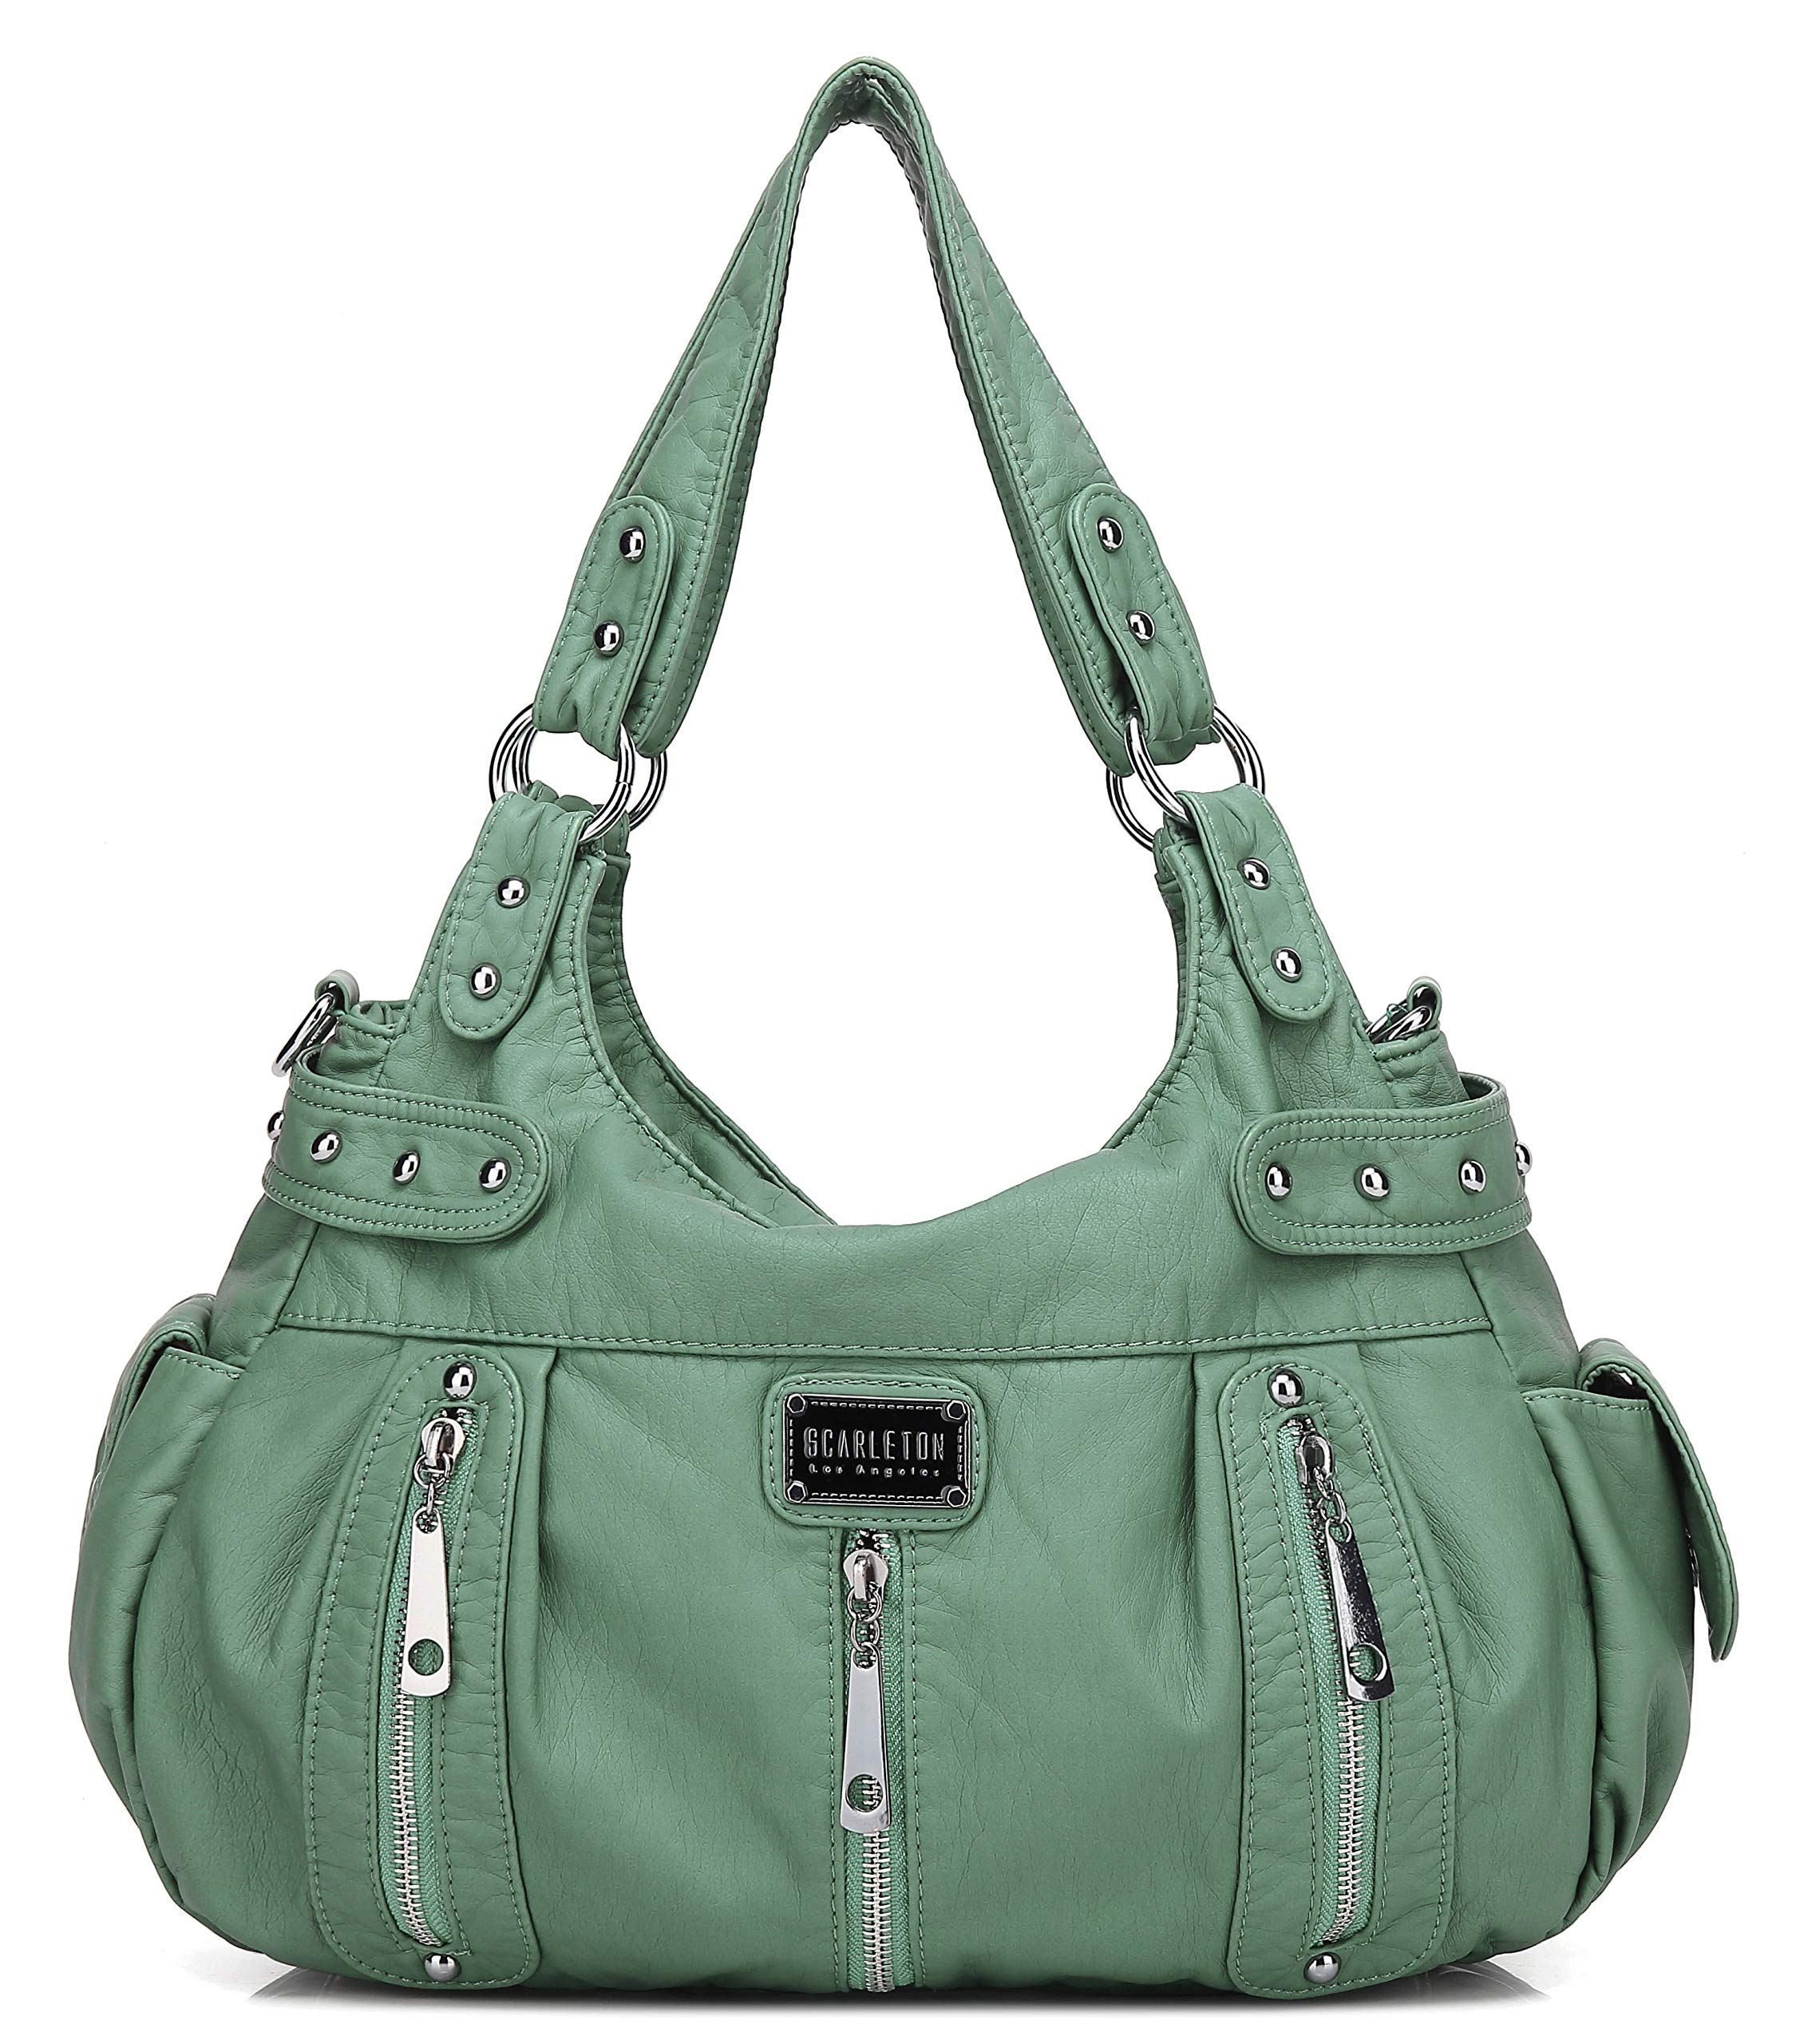 a0a88bfbf046 Best Rated in Shoulder Bags & Helpful Customer Reviews - Amazon.ca